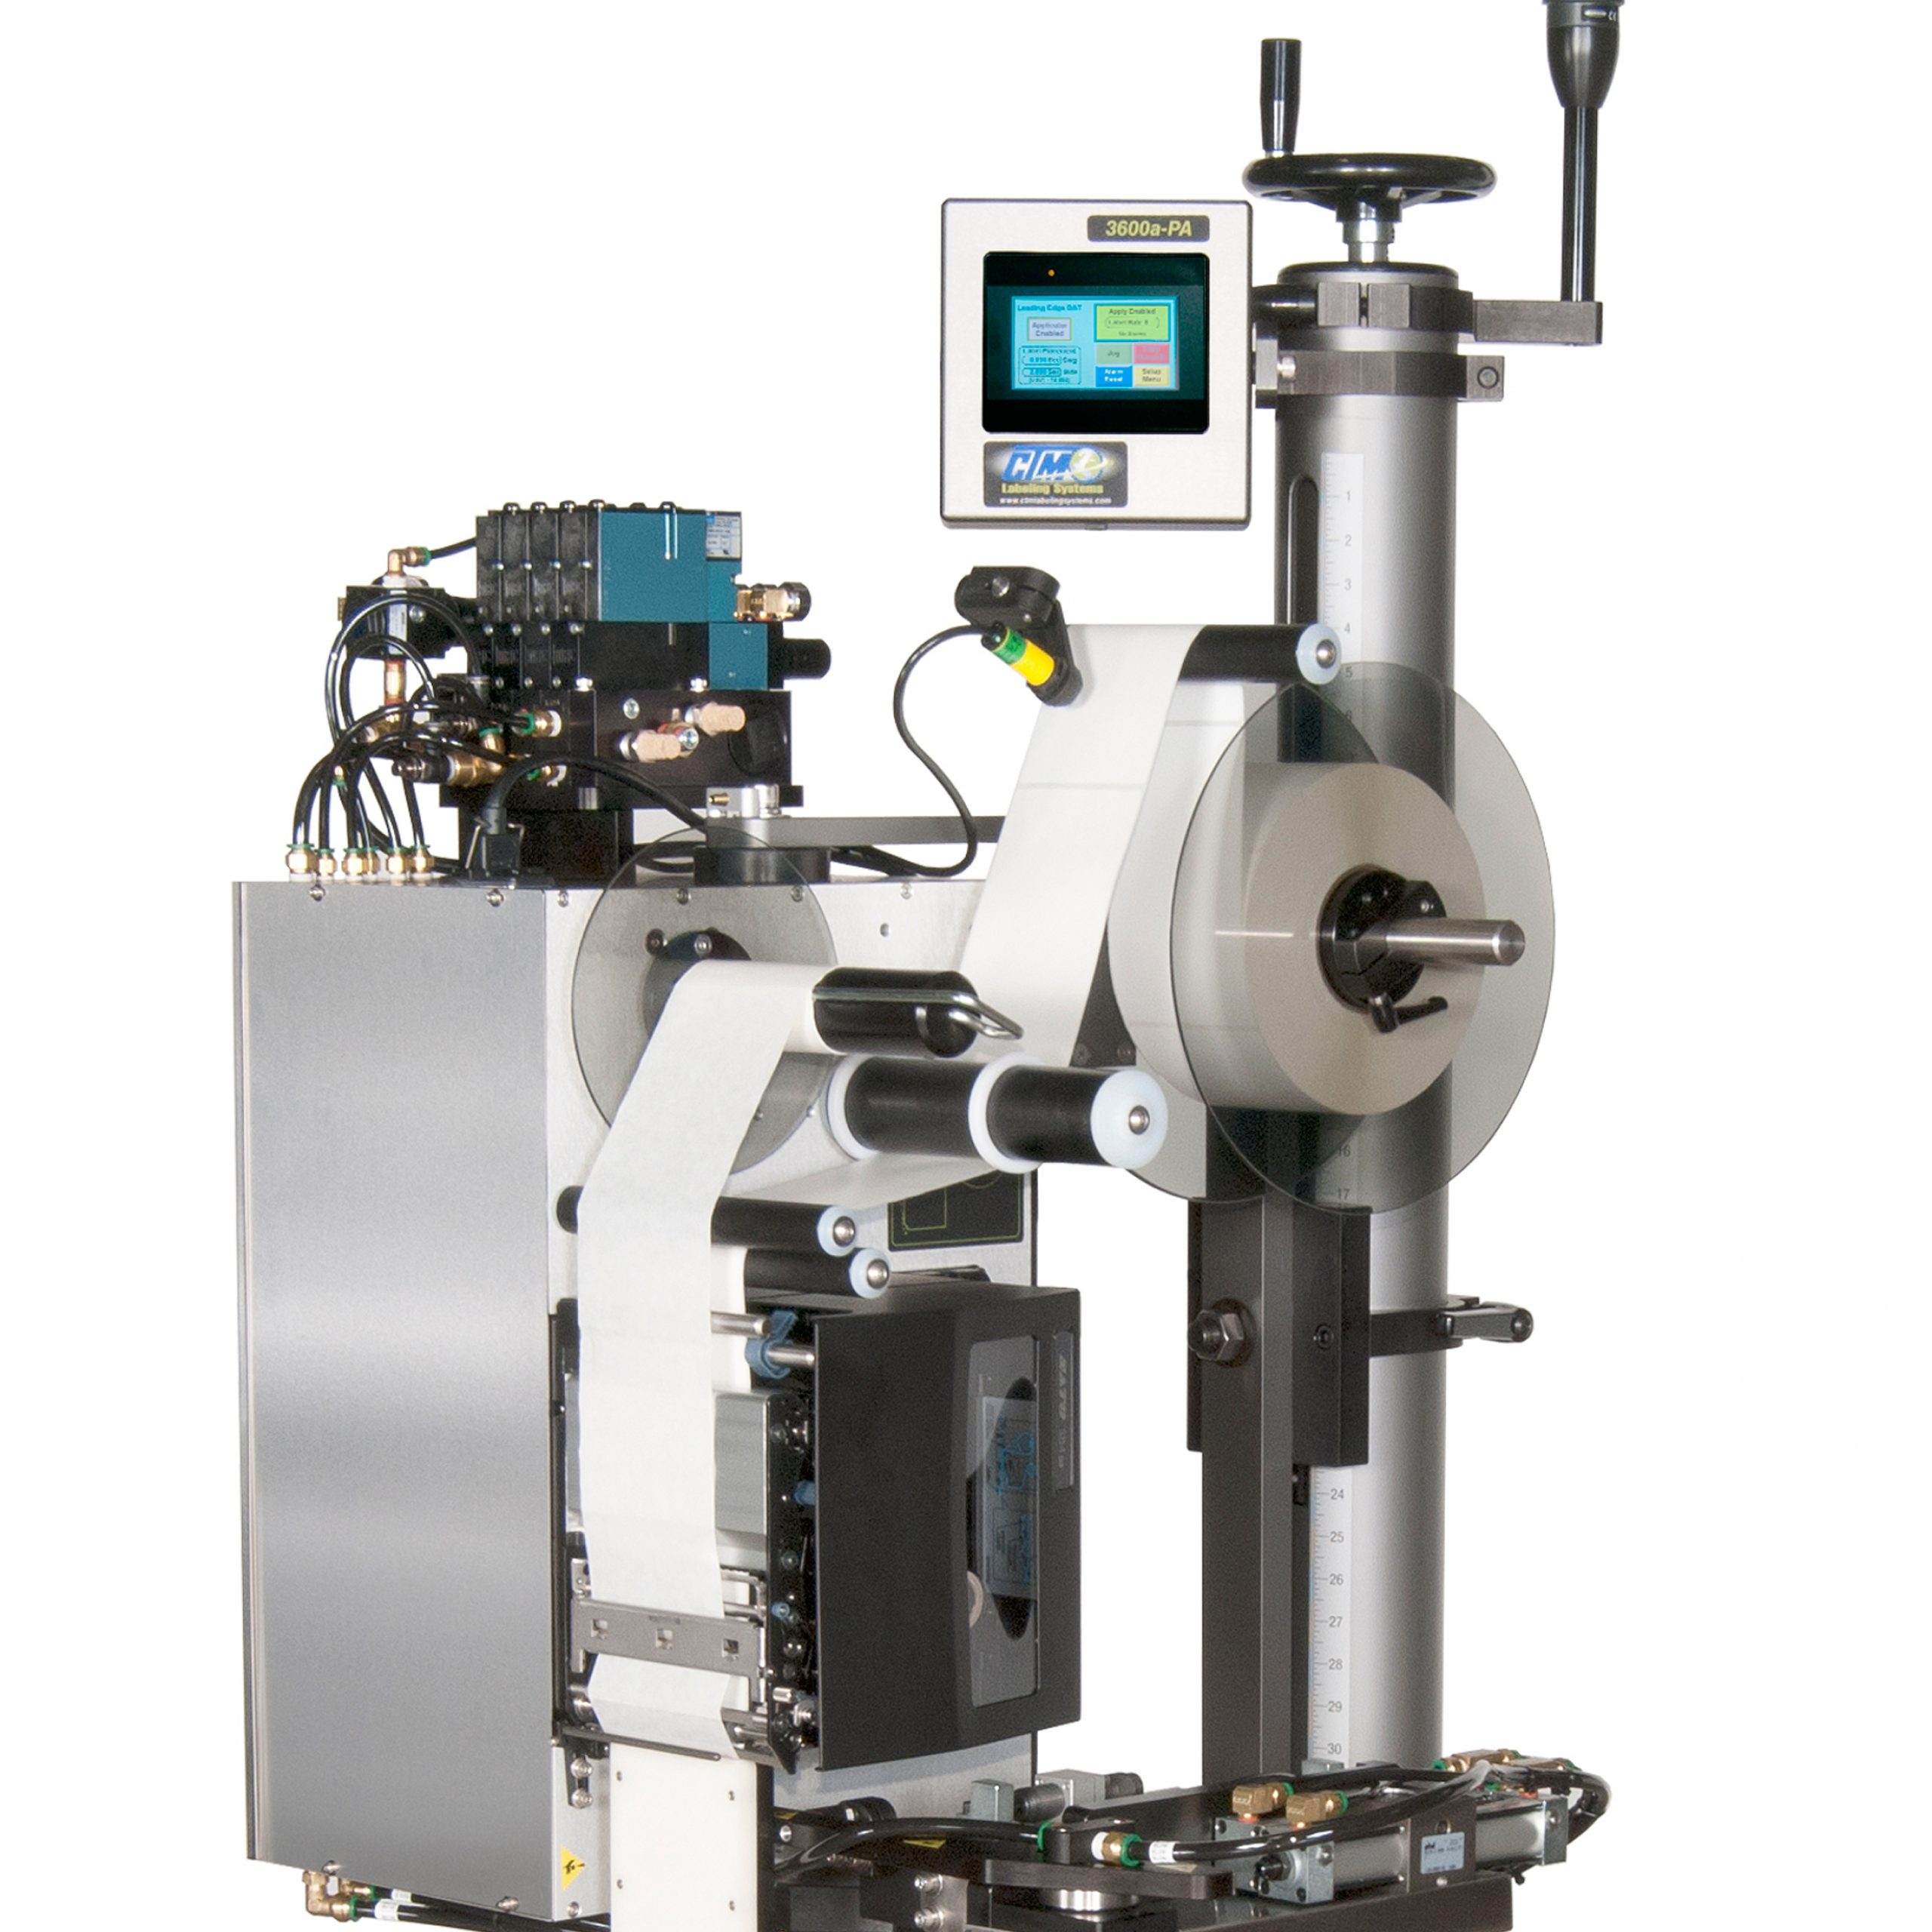 CTM Labeling Systems' 3600a-PA DAT Dual Action Tamp Applicator